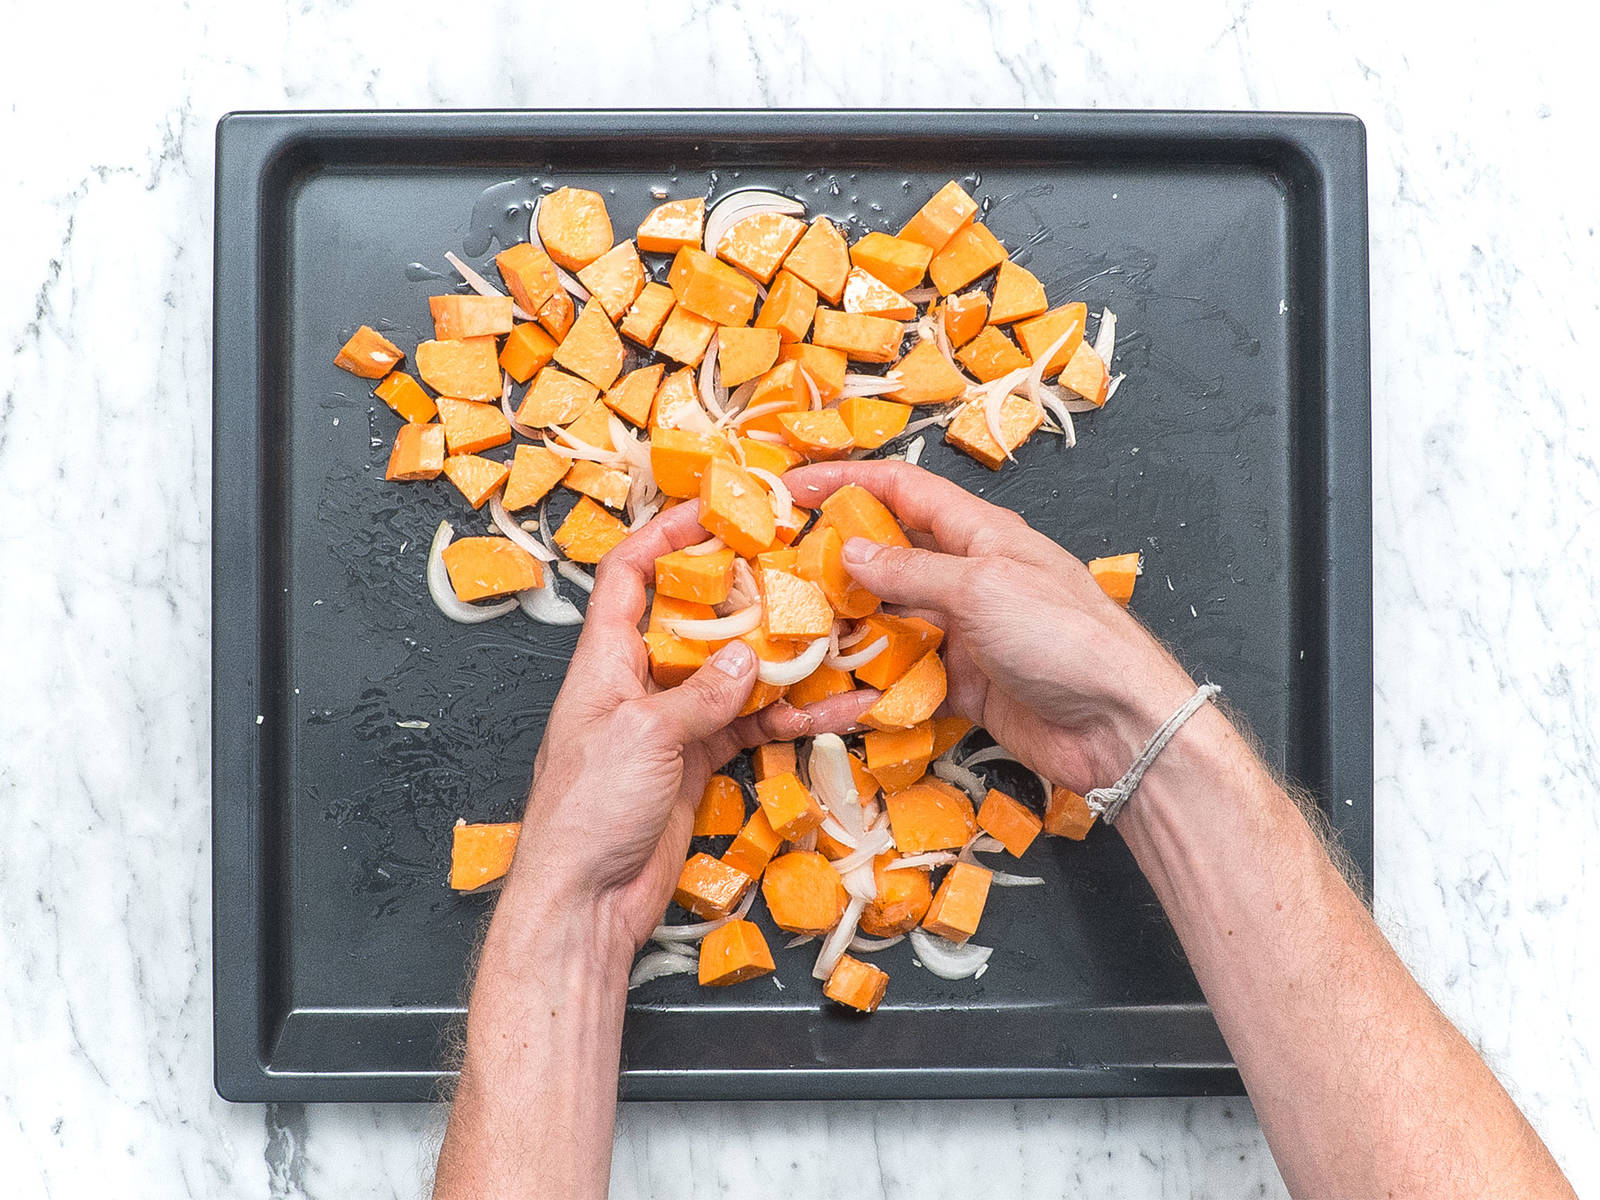 Add sliced sweet potato, onion, shredded coconut, melted coconut oil, garlic, sea salt, and pepper to a baking sheet and toss to coat. Bake at 210°C/410°F for approx. 20 min. Then remove from the oven and let cool down a bit.